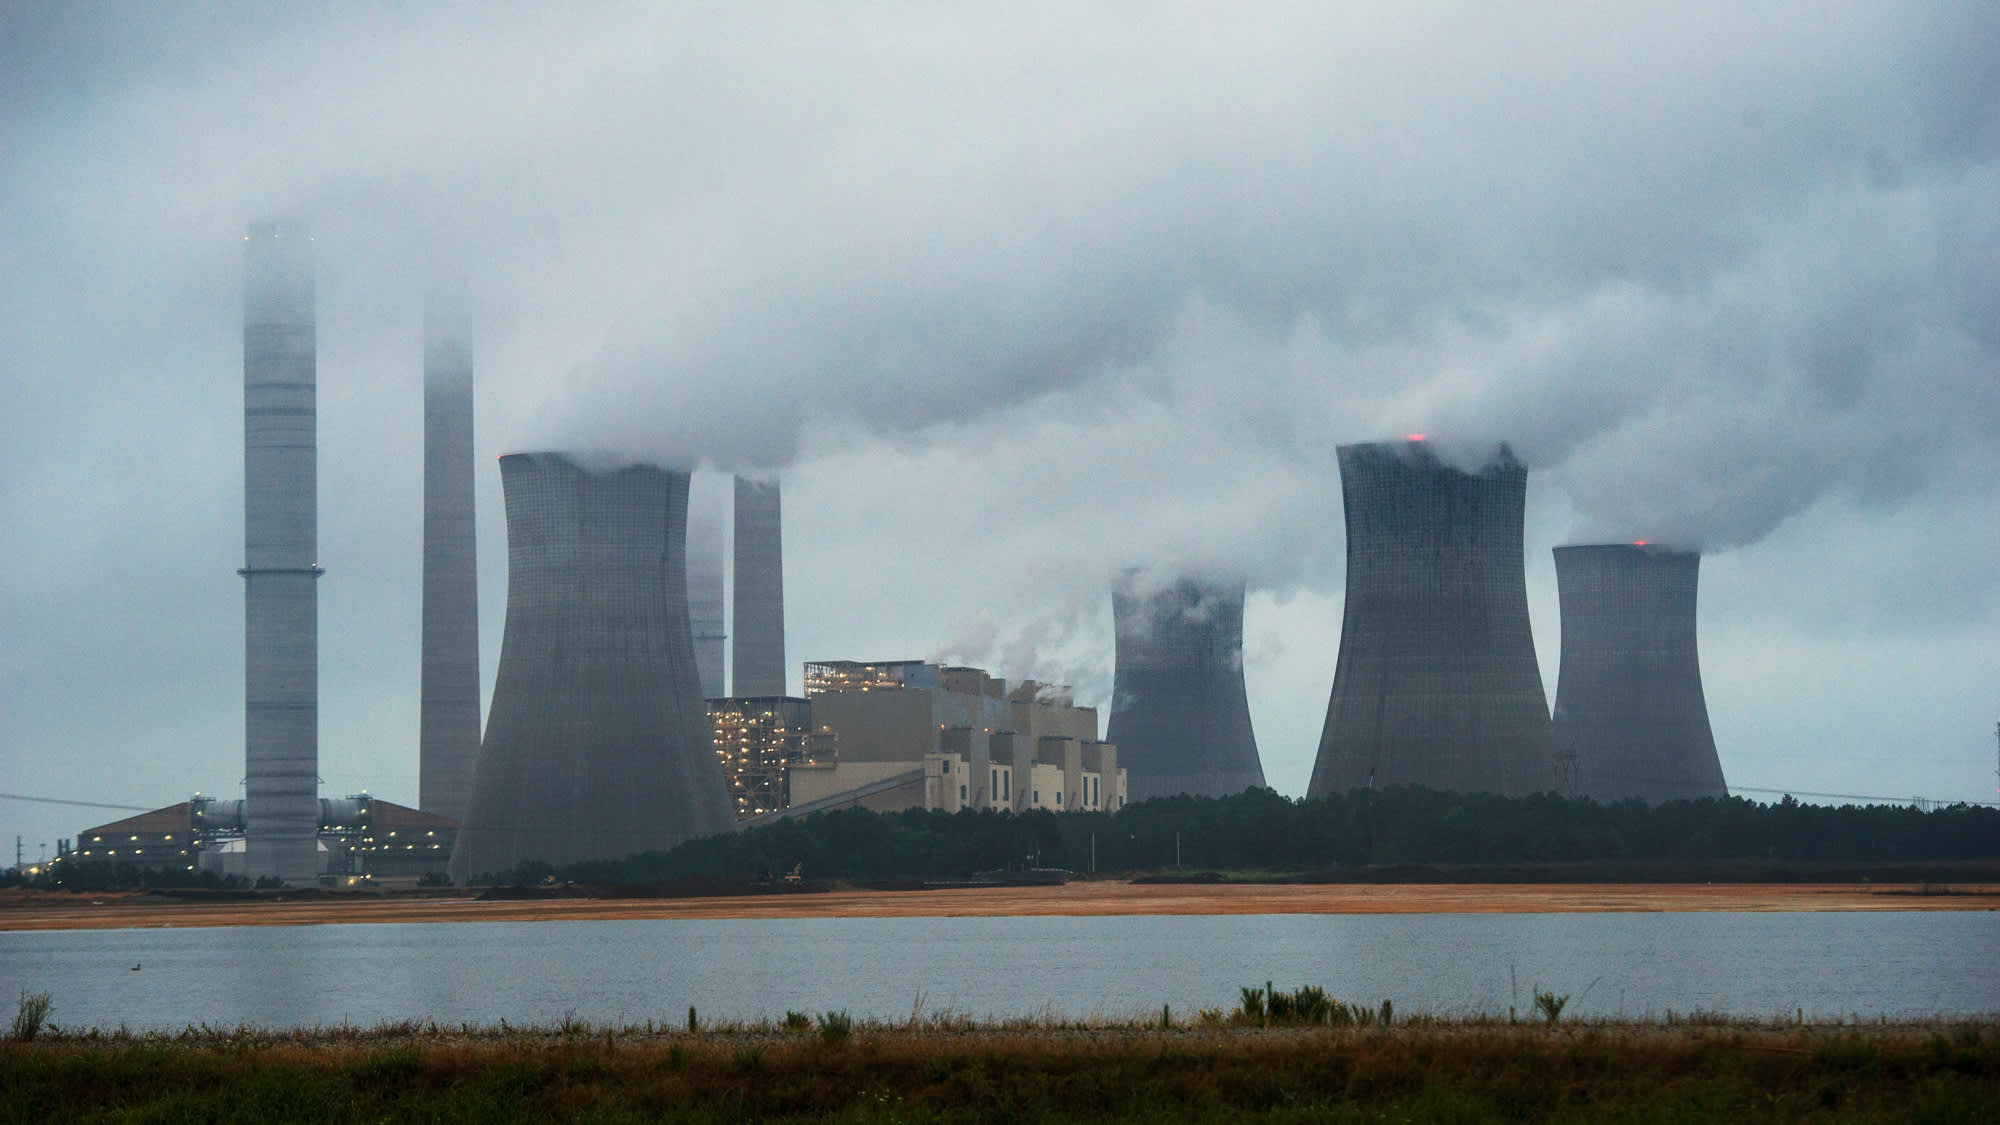 Energy Dept proposes power pricing that may boost coal nuclear plants